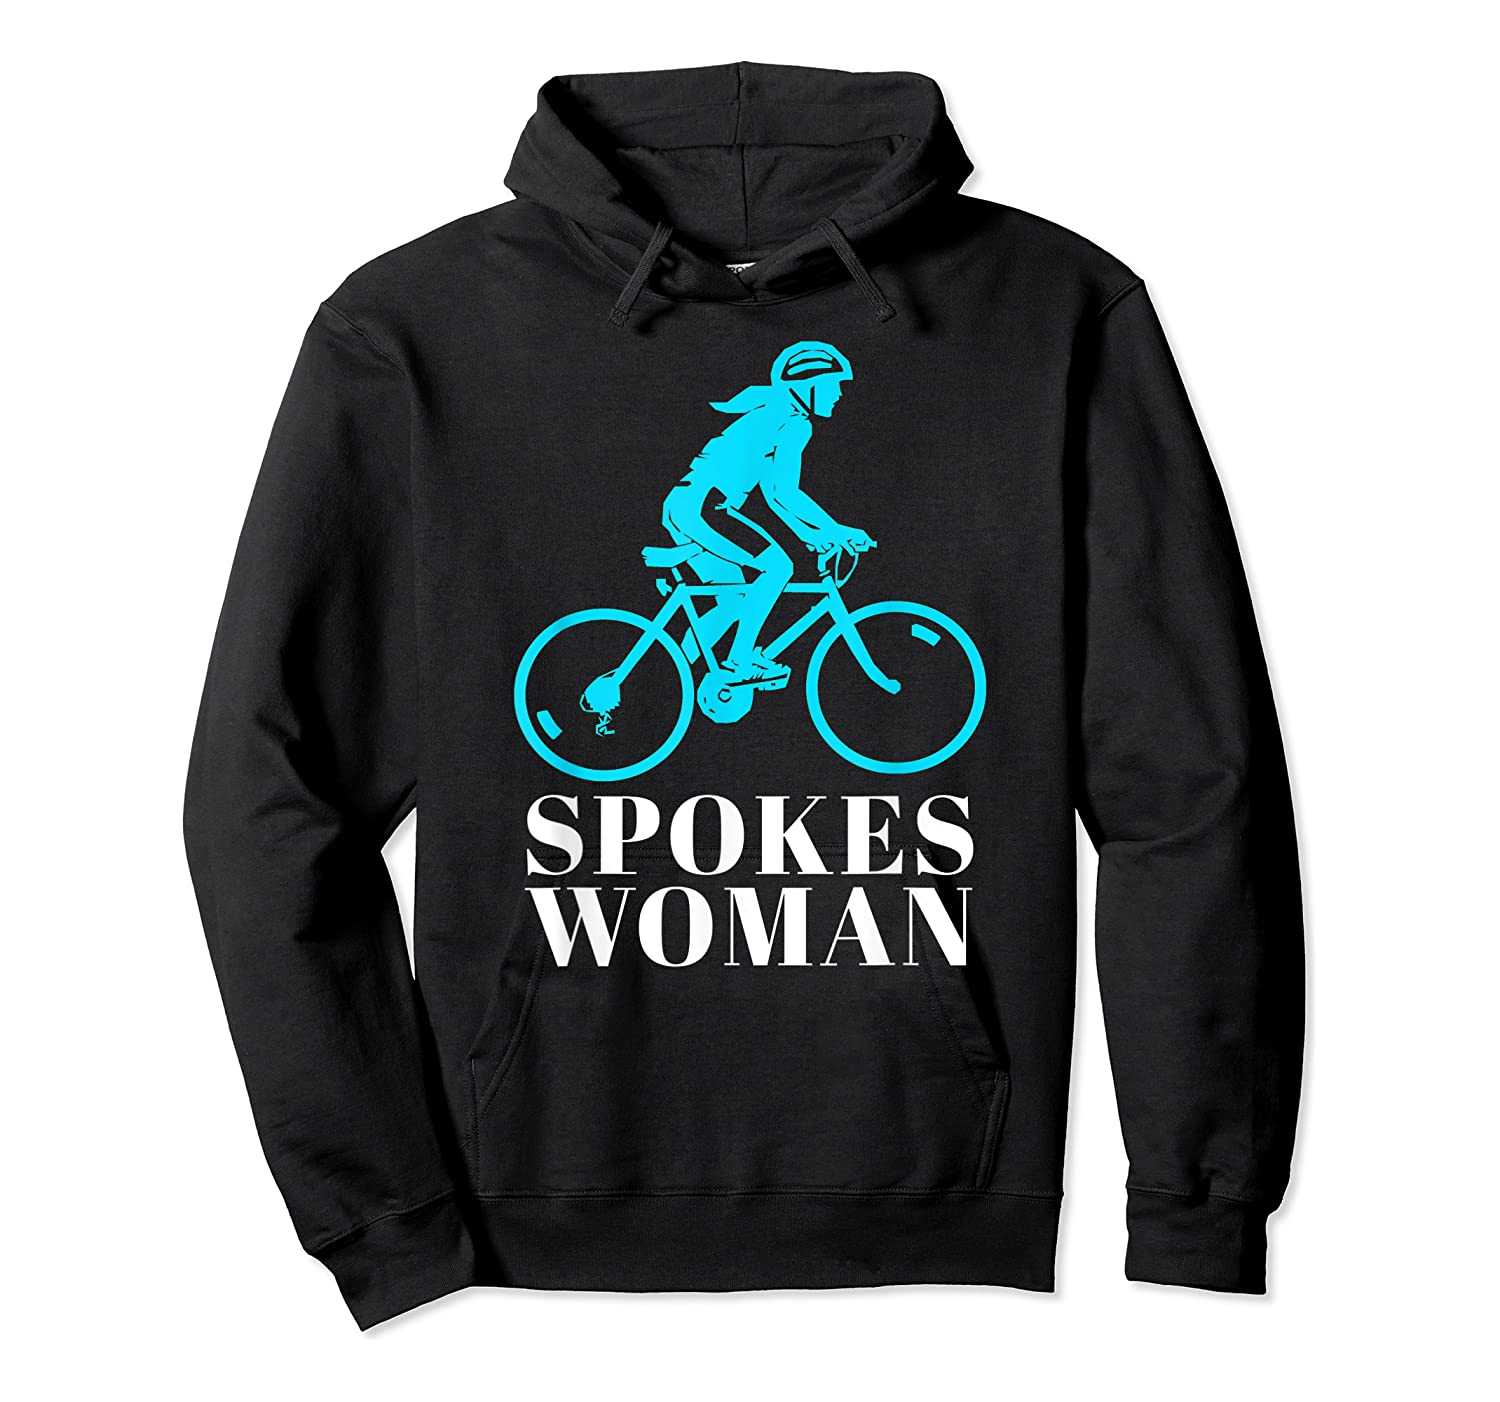 Spokes Woman Cycling Shirts Unisex Pullover Hoodie